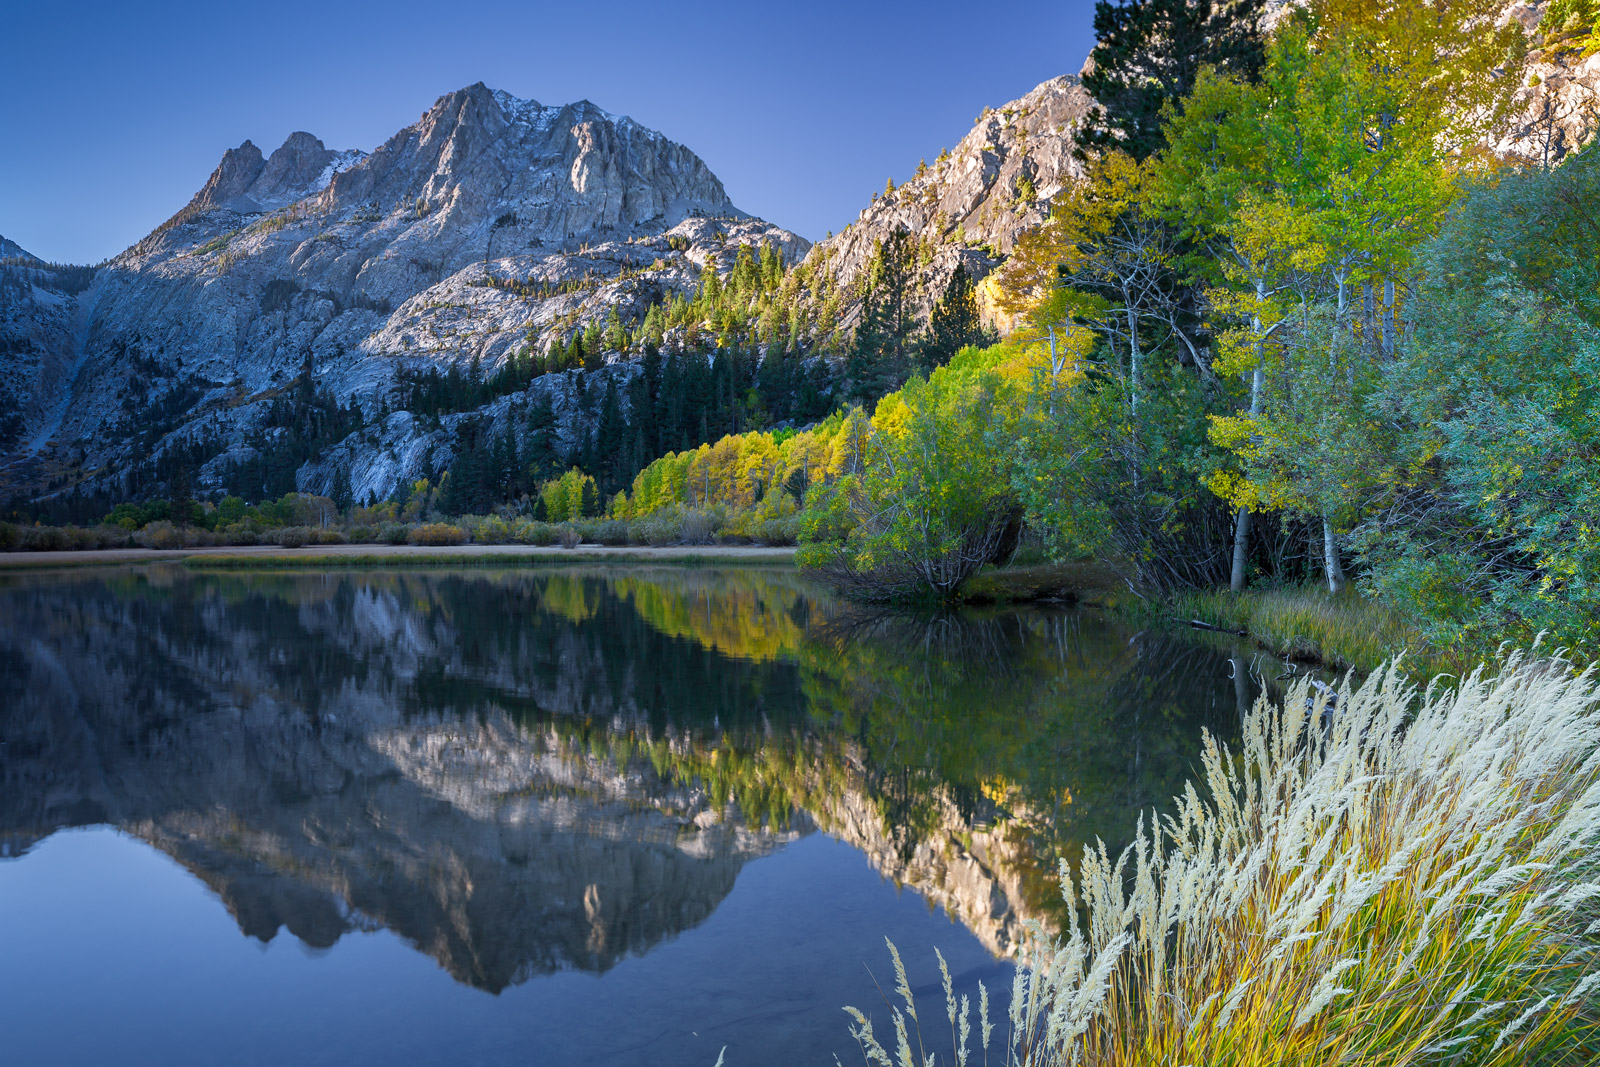 California, Eastern Sierra, Mountain, Silver Lake, Fall, Reflection, limited edition, photograph, fine art, landscape, photo